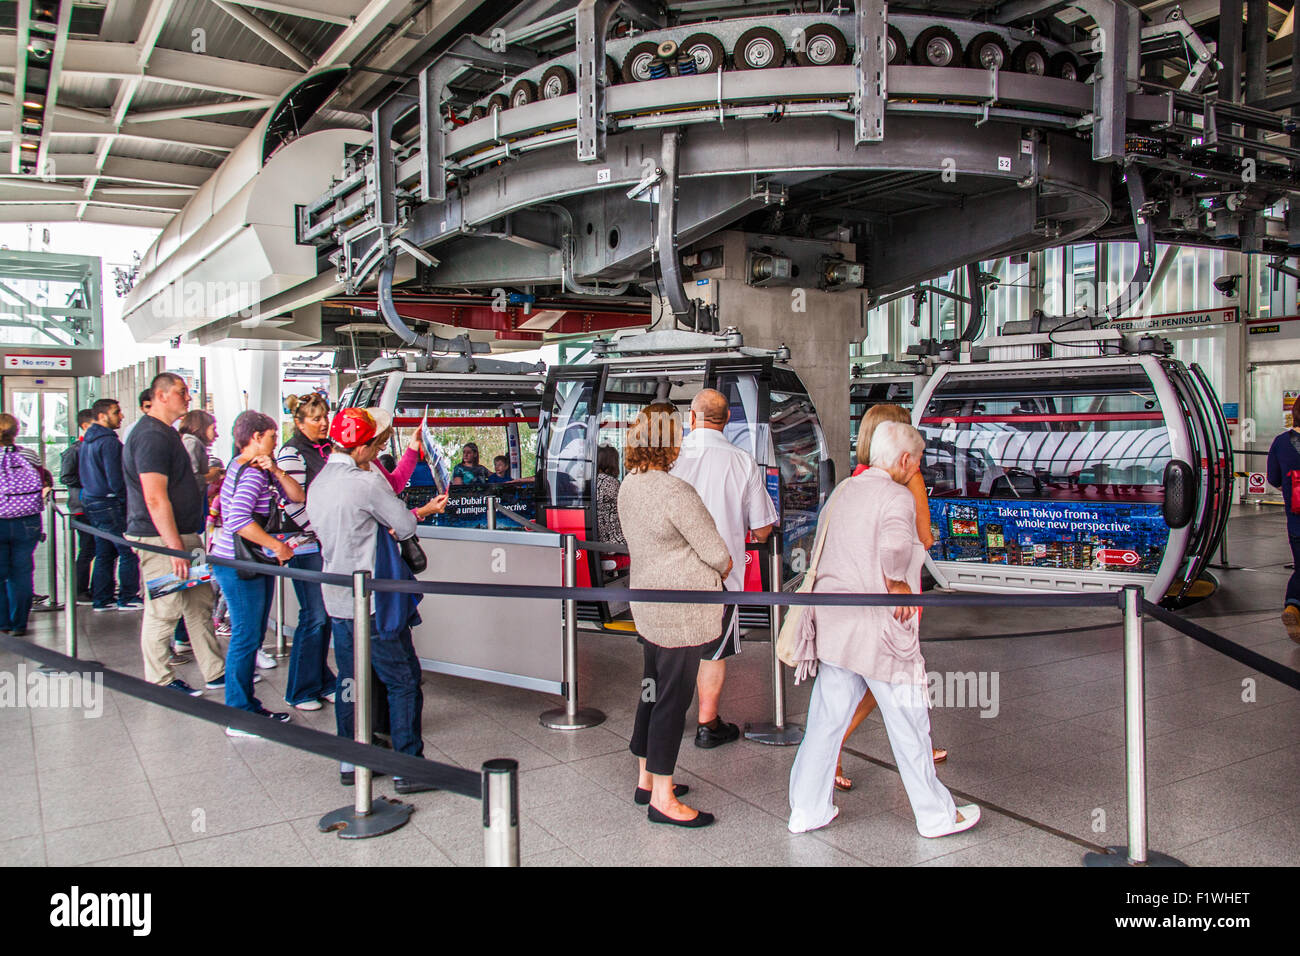 Cable Automotive Oklahoma City : Passengers boarding the emirates air line cable car